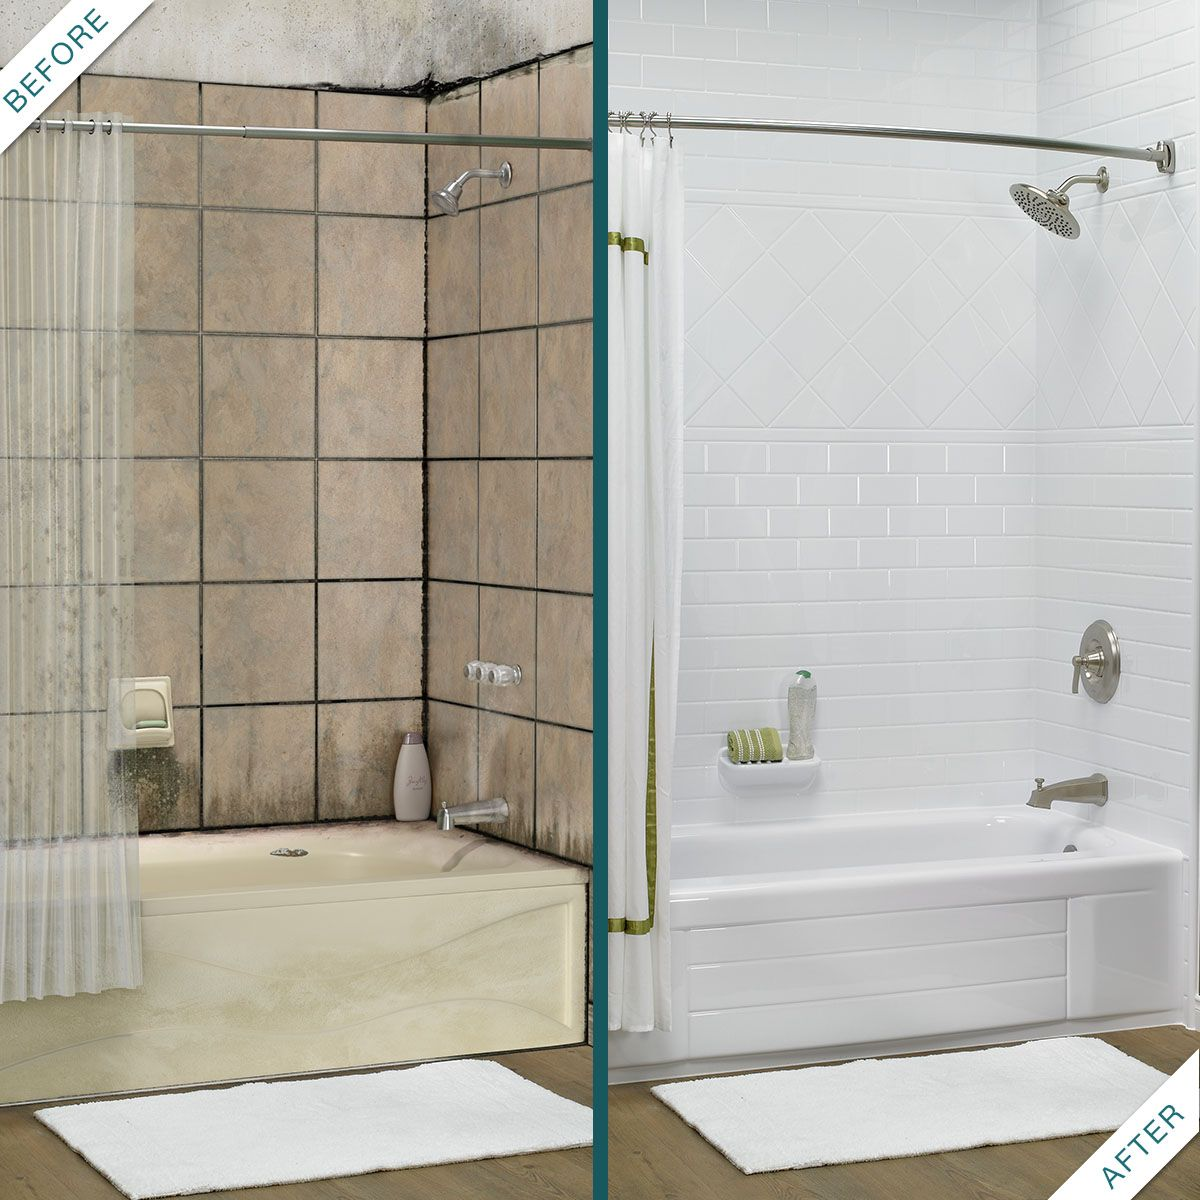 Bathroom Remodel Cost Sacramento you don't have to deal with the hassle that arises from tile and